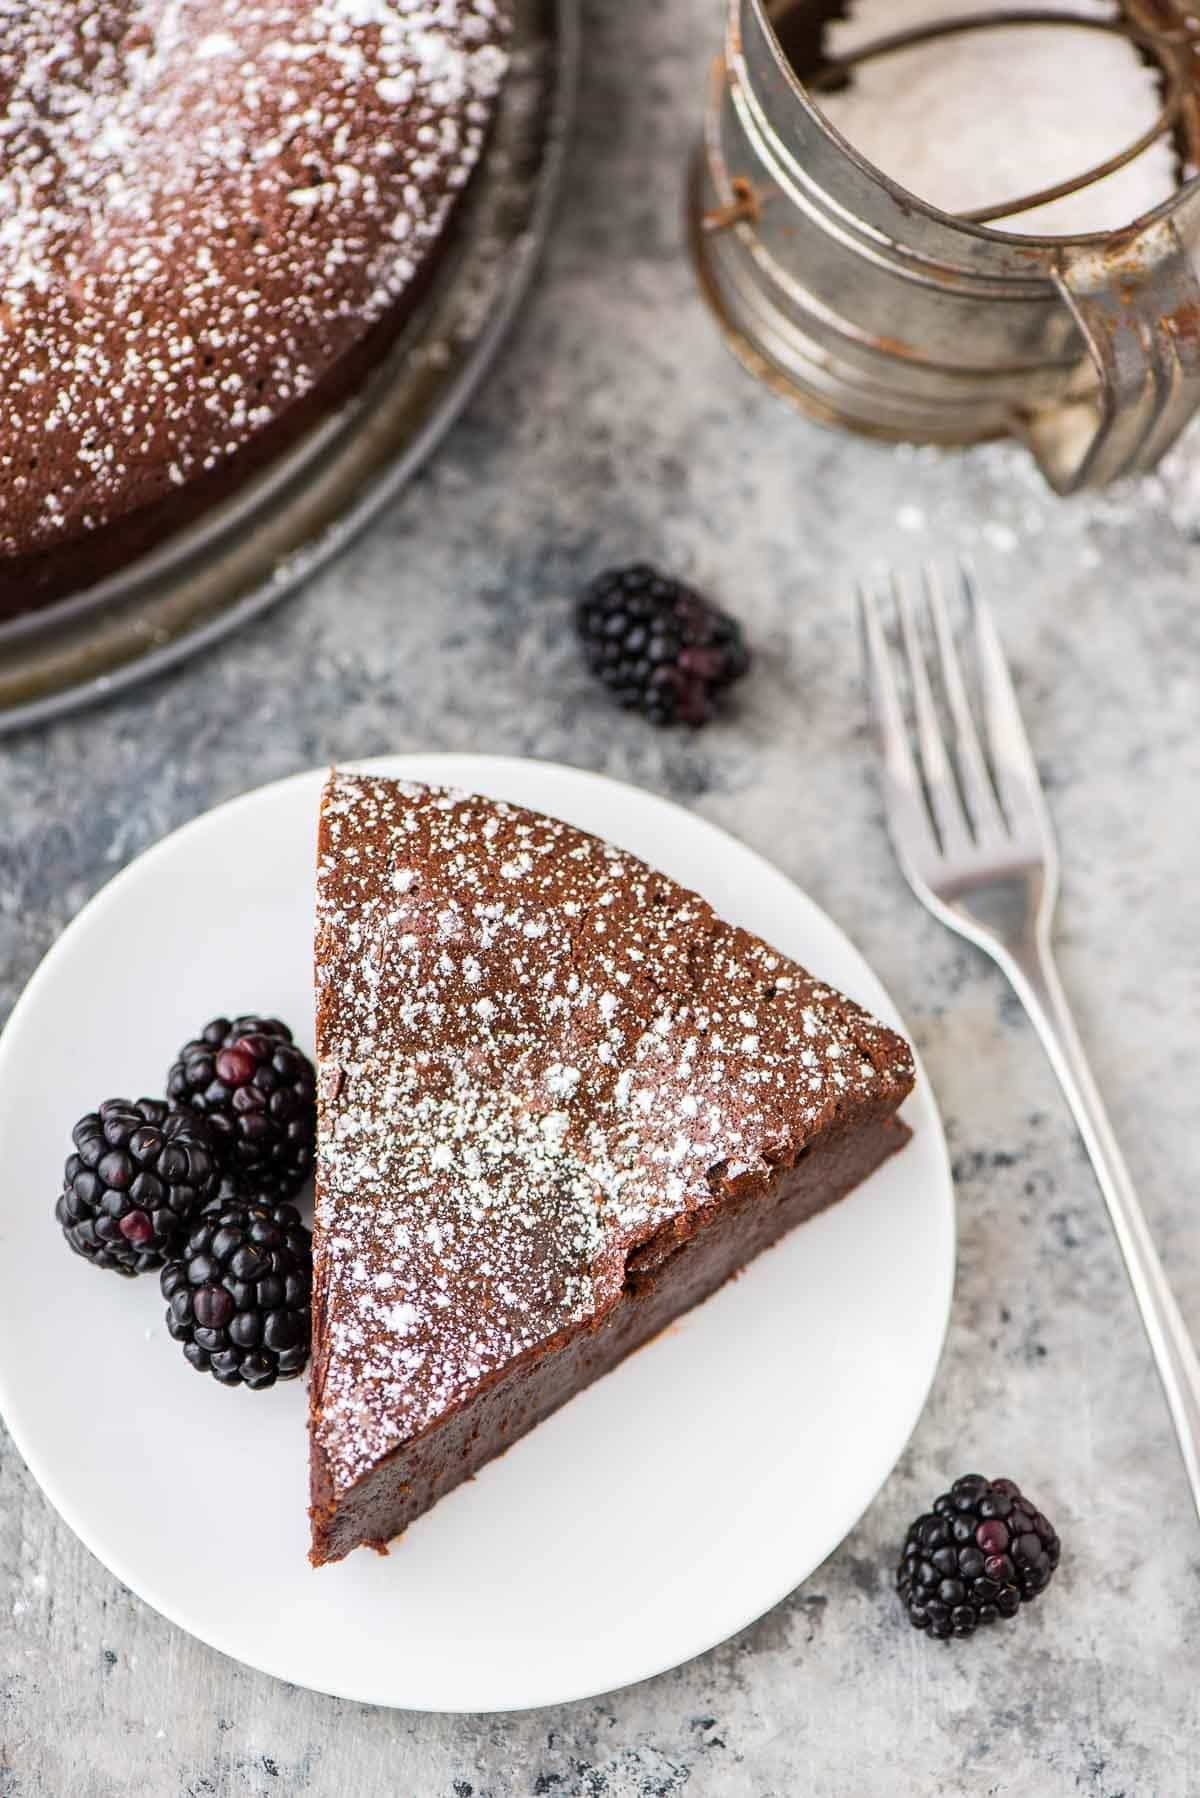 Rich and decadent Flourless Chocolate Torte. Easy to make and absolutely decadent! {gluten free and grain free} Recipe at wellplated.com | @wellplated